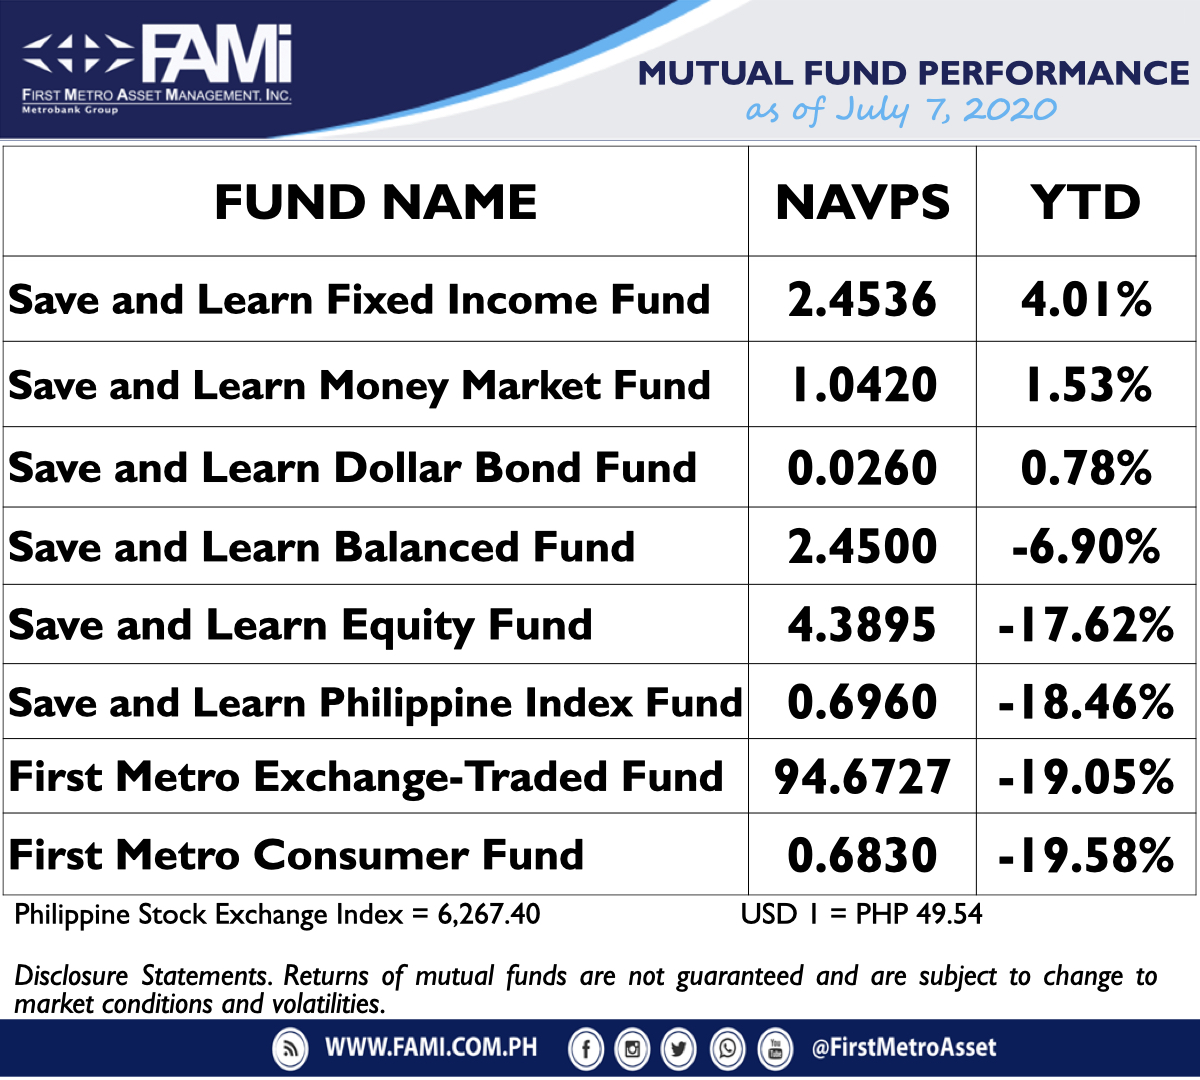 Here are our latest First Metro Asset Funds NAVPS as of July 7, 2020  #choosetoinvest #choosewisely #chooseFAMI https://t.co/0mkFrQ9IiZ